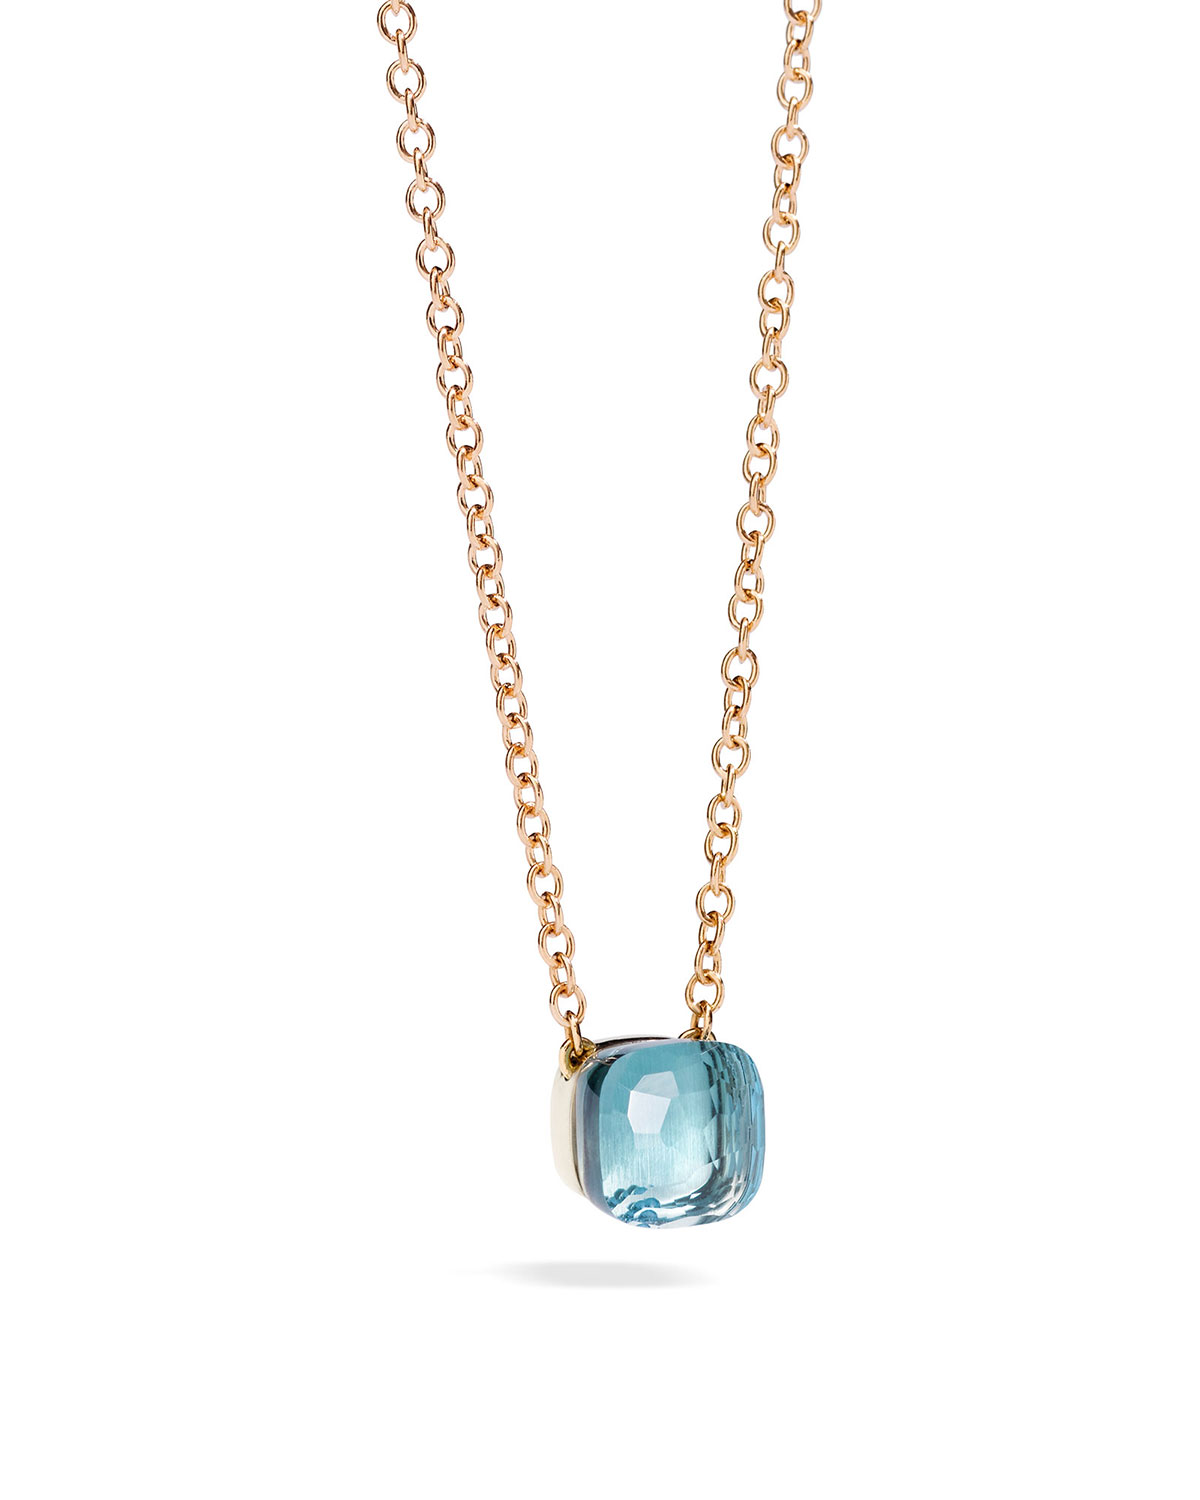 POMELLATO Nudo Blue Topaz Pendant Necklace